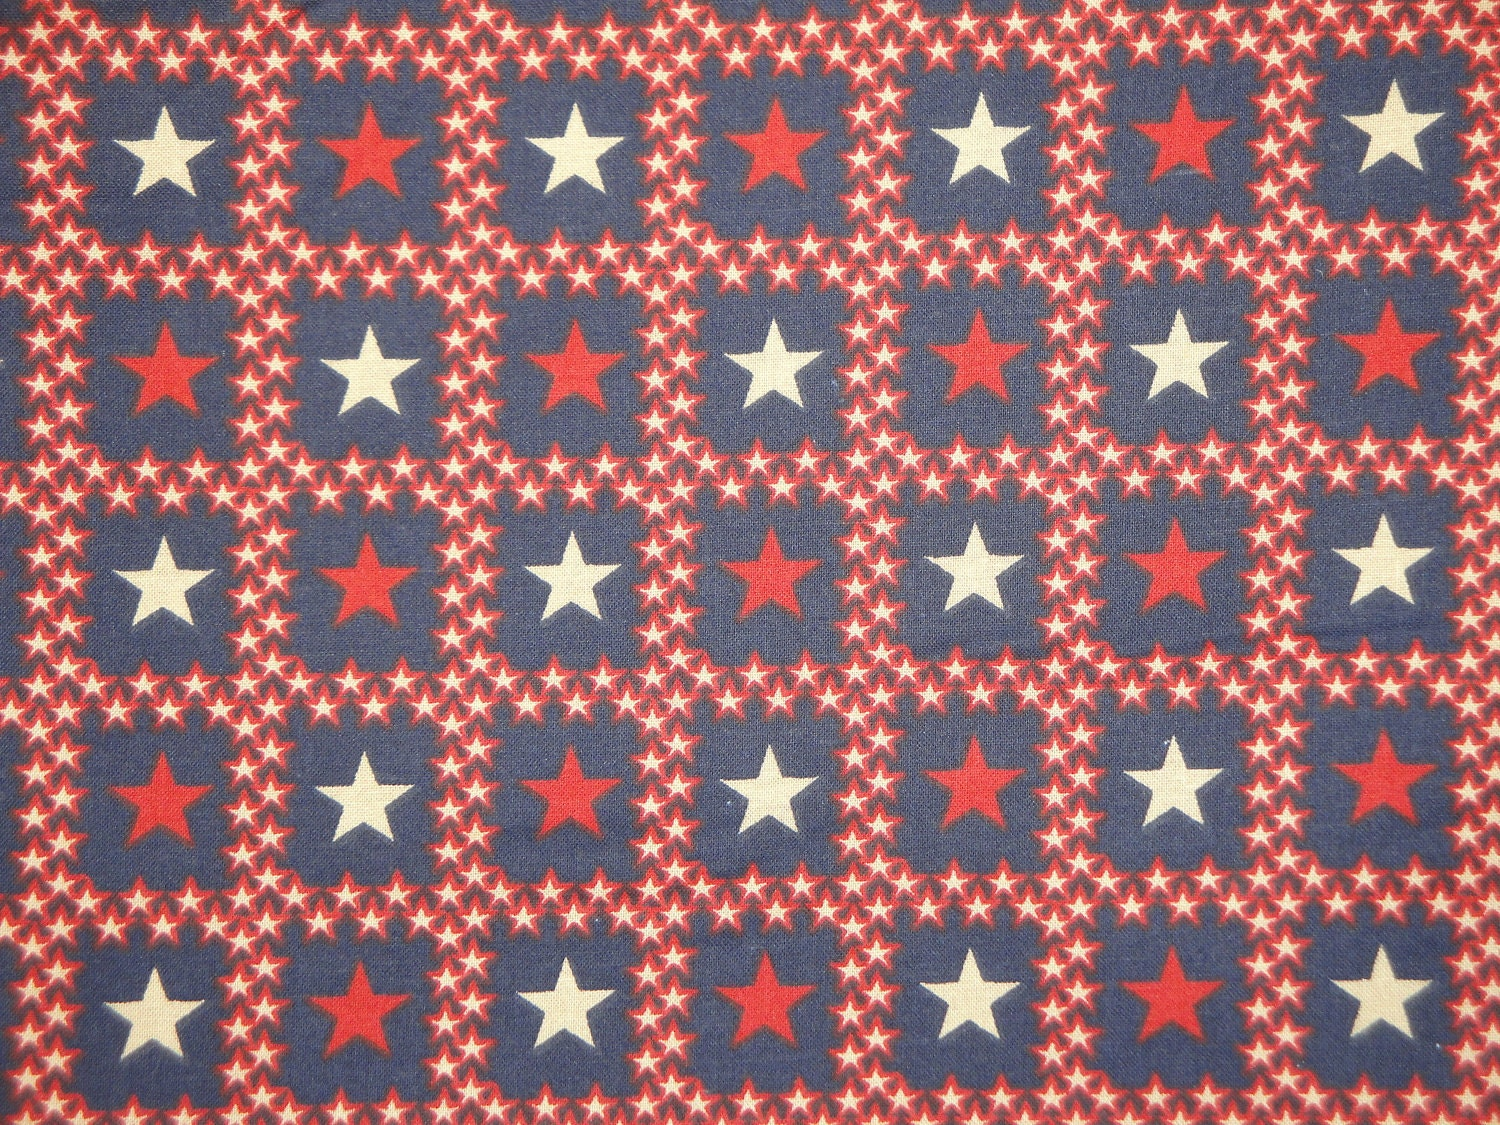 Star fabric americana fabric cotton fabric red white for Star fabric australia